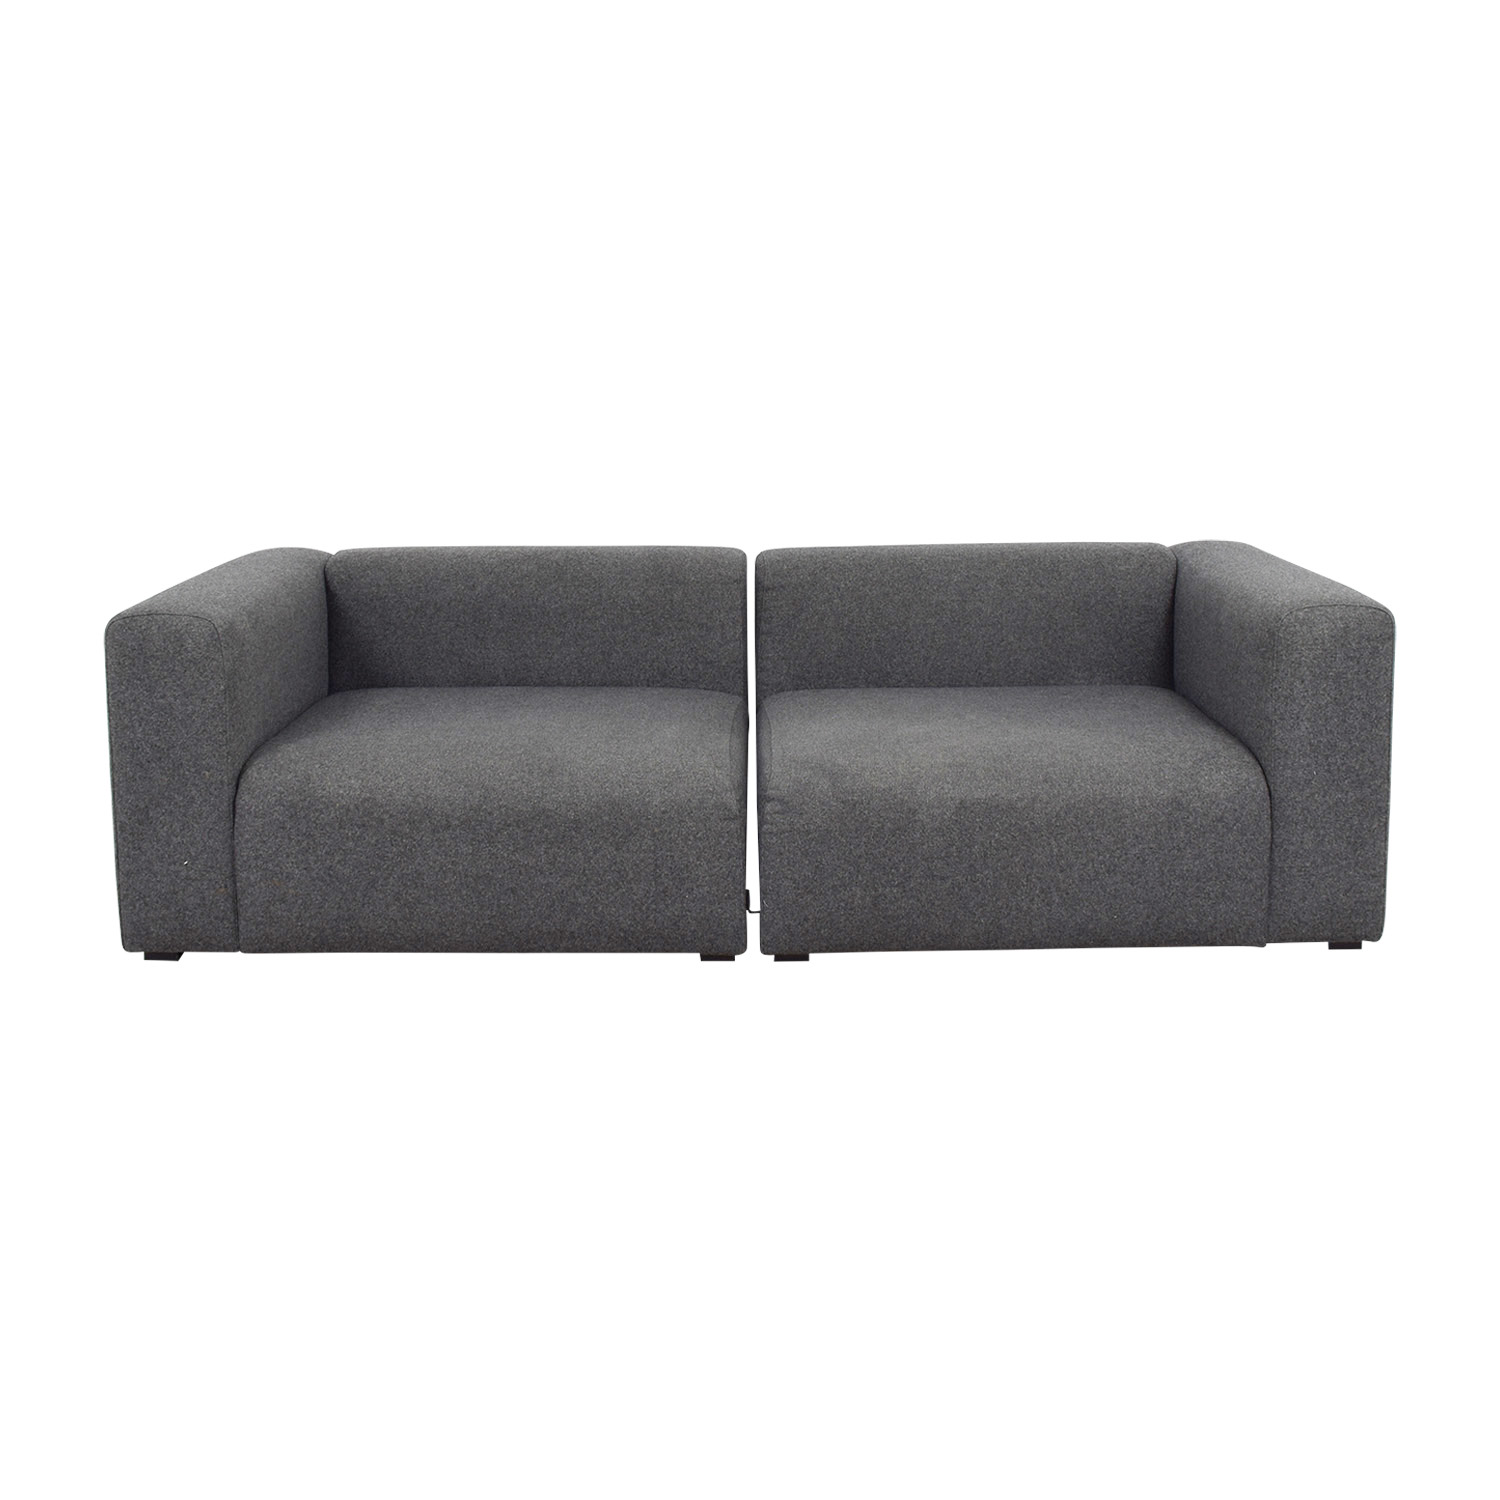 Hay Hay Mags Modular Grey Sectional second hand